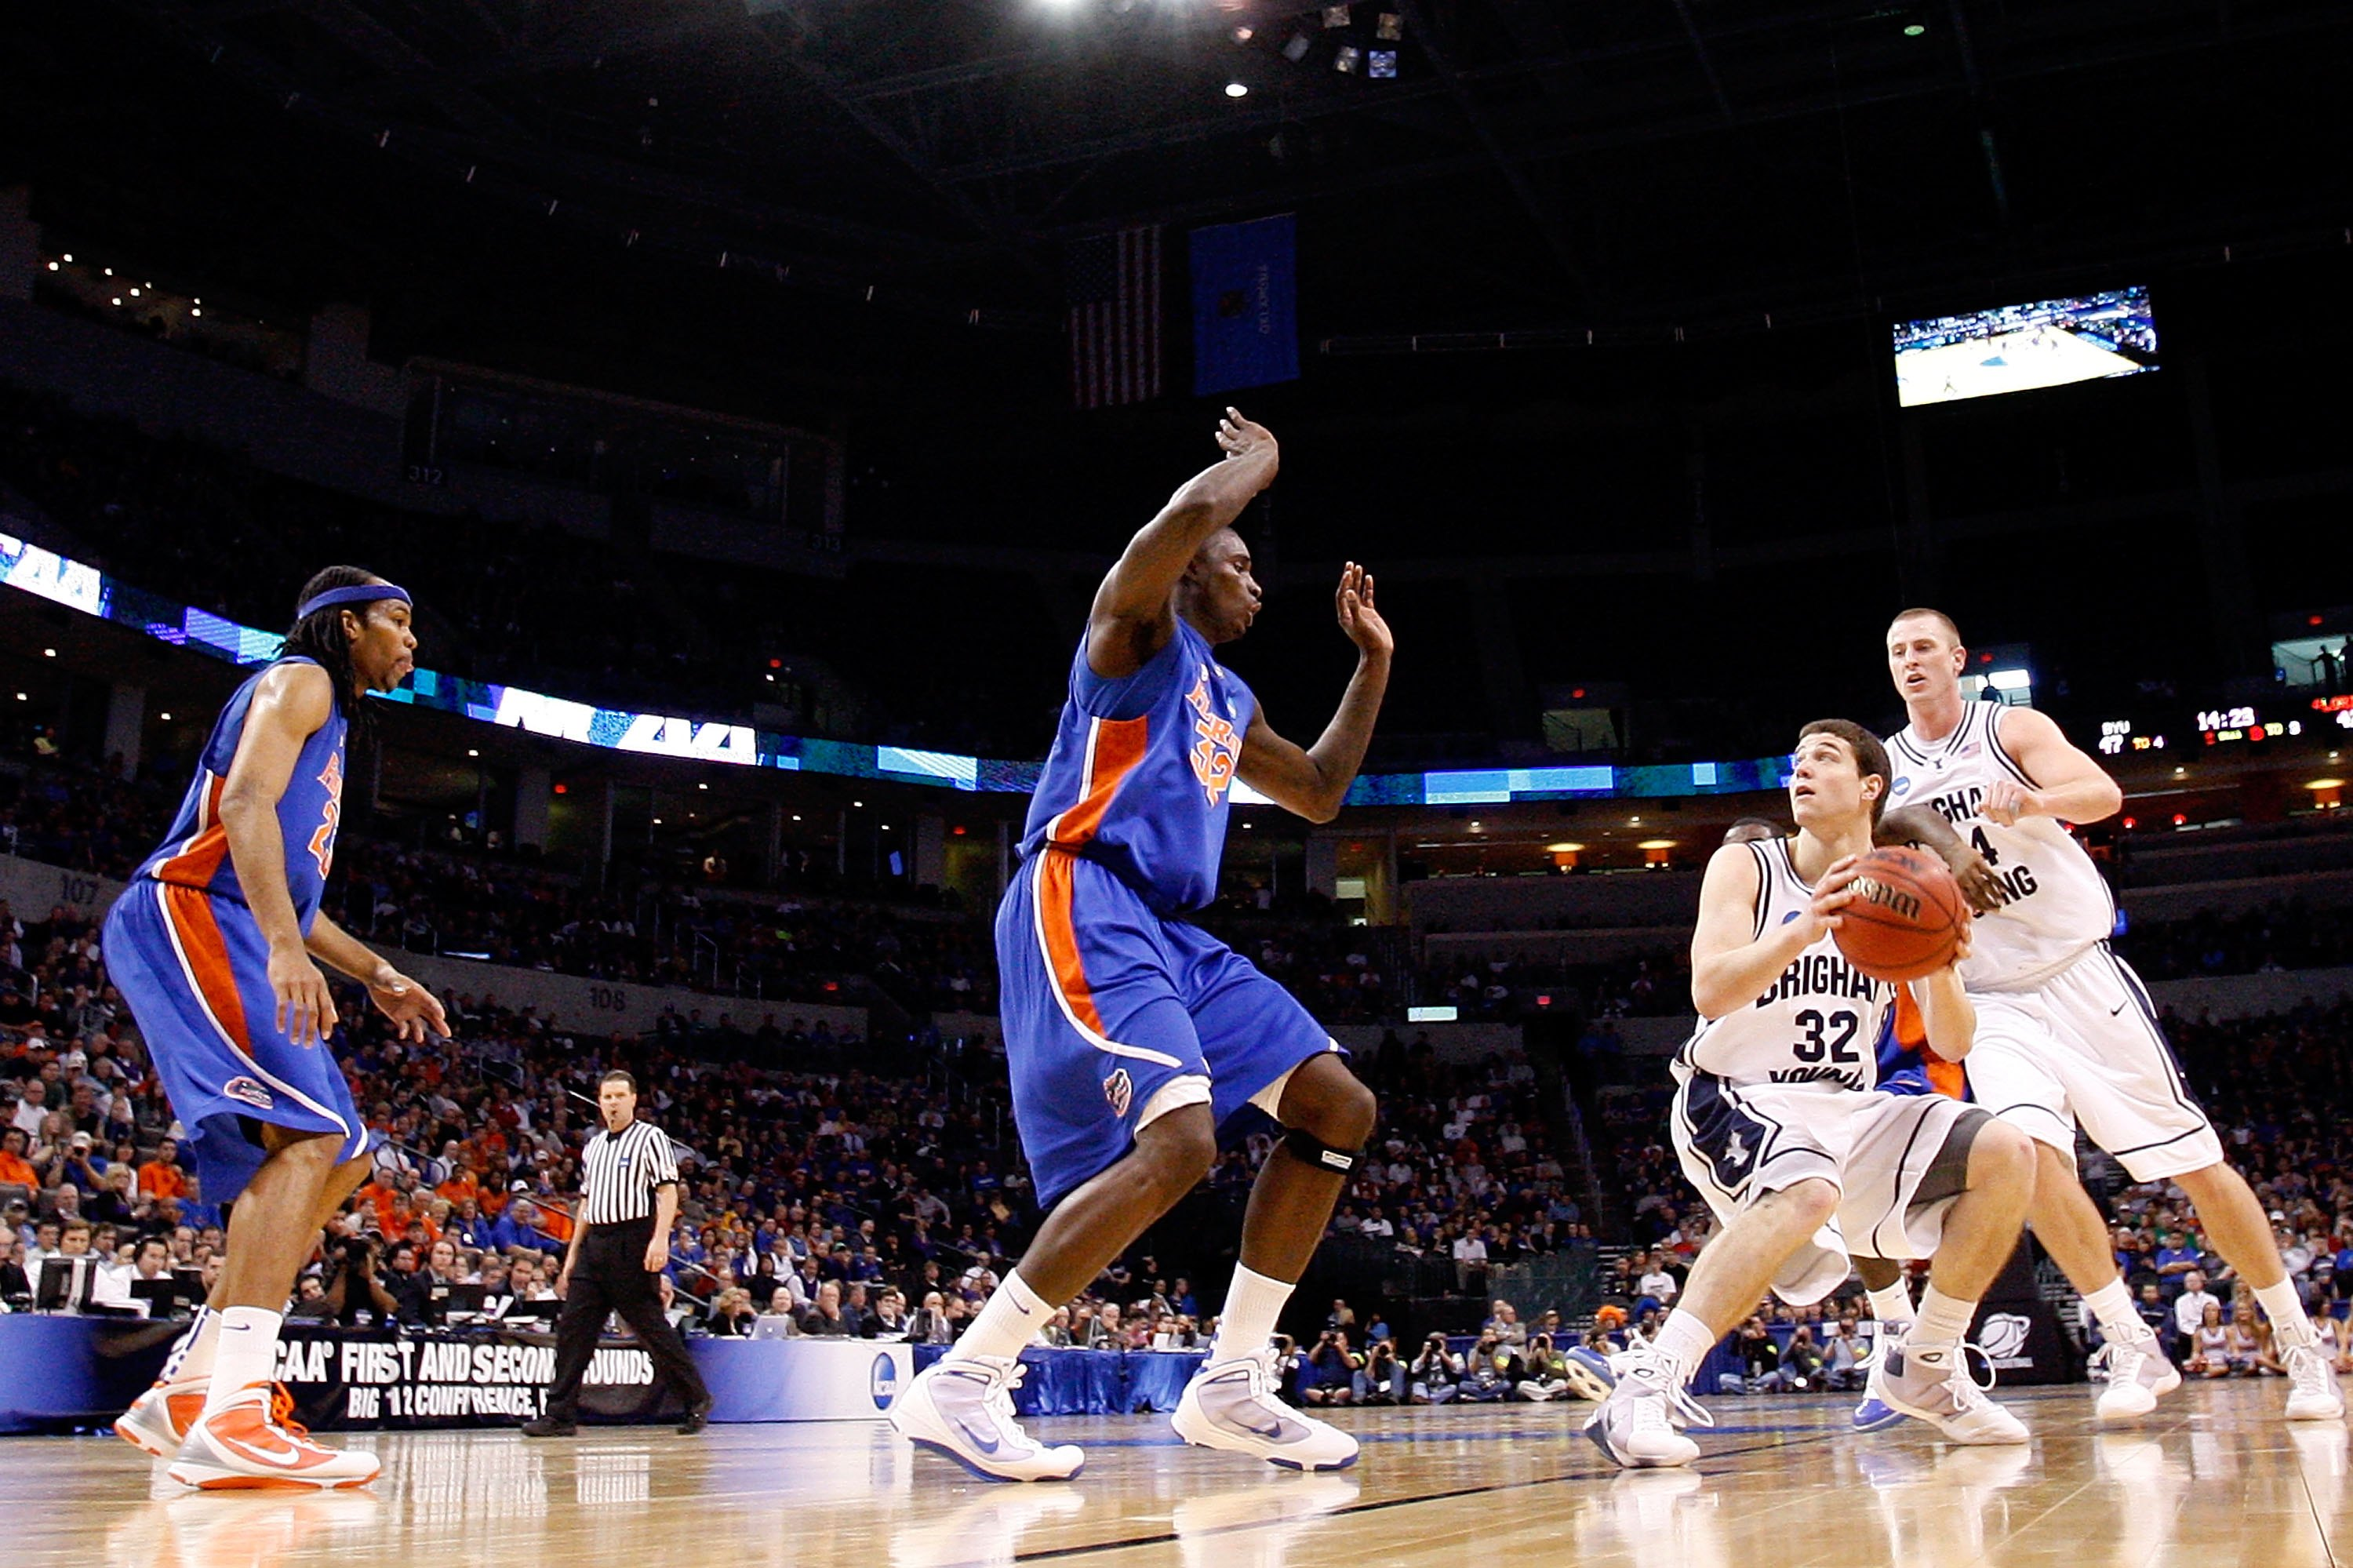 OKLAHOMA CITY - MARCH 18:  Jimmer Fredette #32 of the BYU Cougars looks to shoot the ball against Vernon Macklin #32 of the Florida Gators during the first round of the 2010 NCAA men�s basketball tournament at Ford Center on March 18, 2010 in Oklahoma Cit